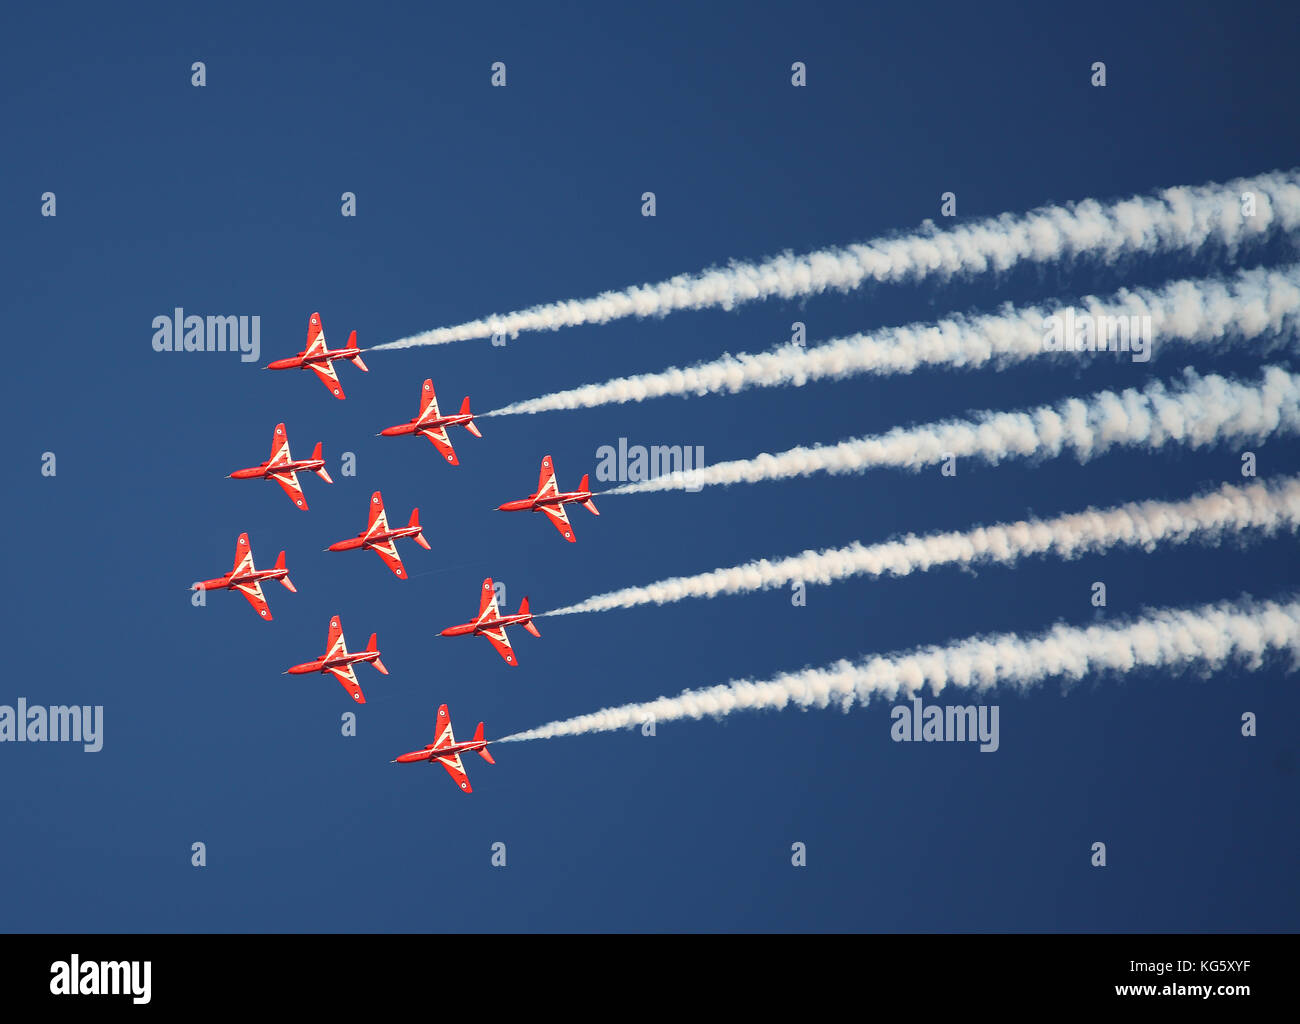 Red Arrows in practise, Sywell Aerodrome - Stock Image